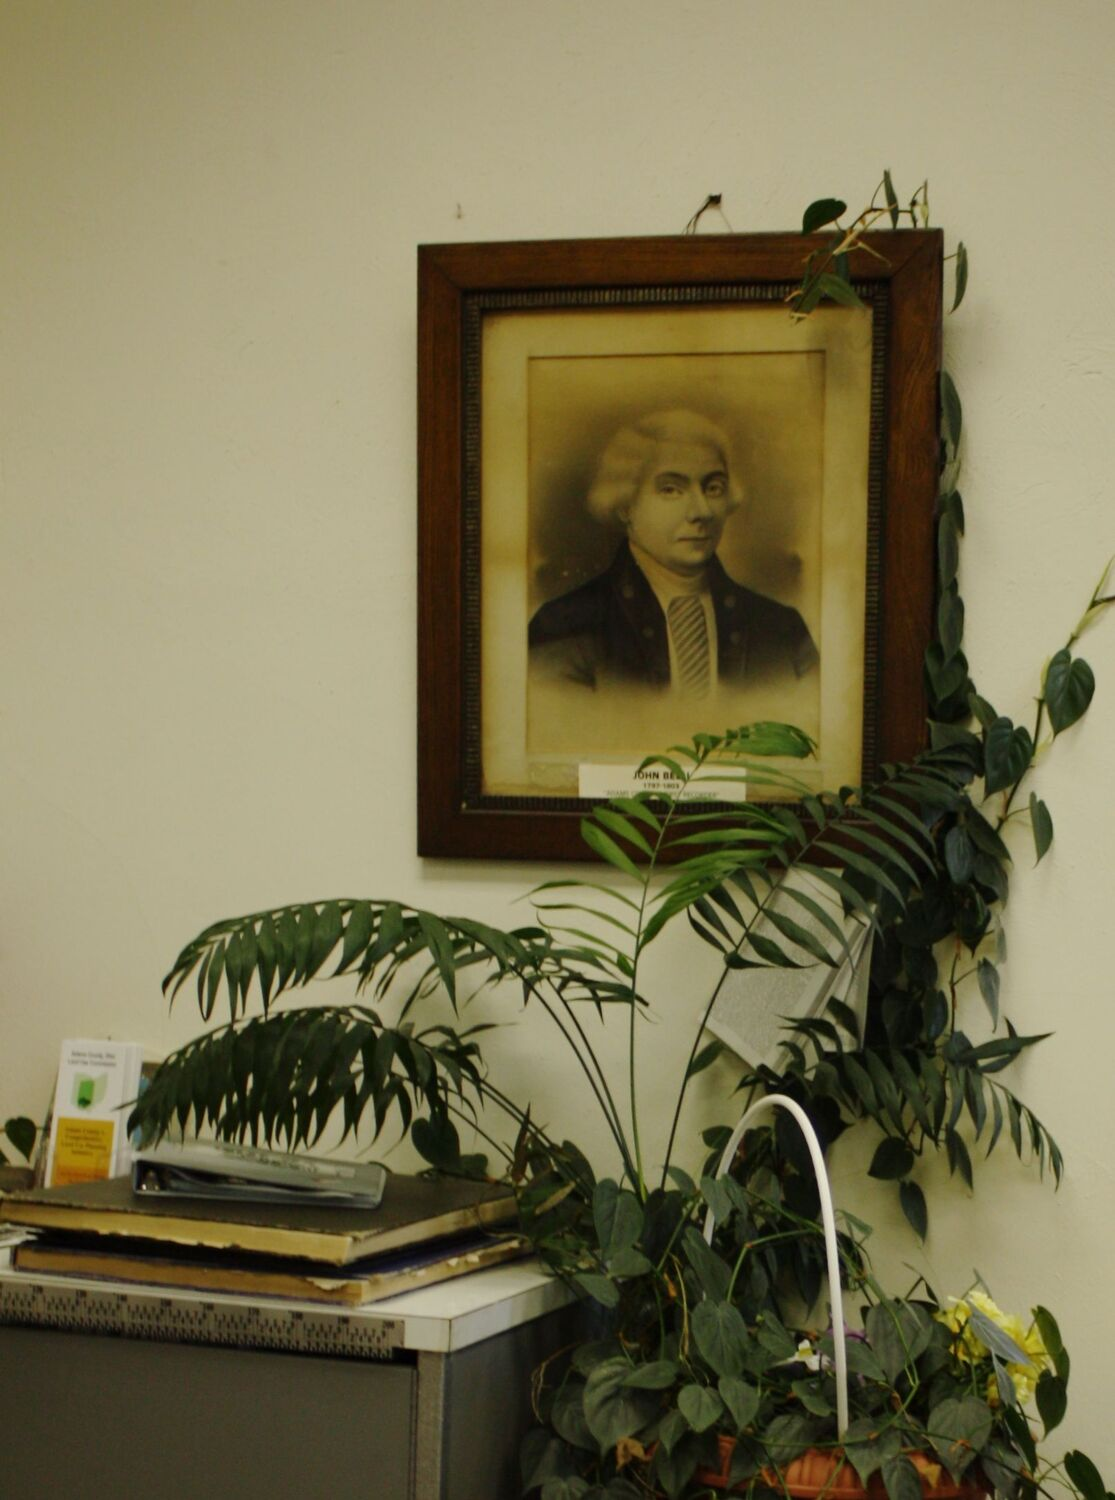 Portrait of Maj. John Belli, Recorder's Office, Adams County Court House, West Union, Ohio